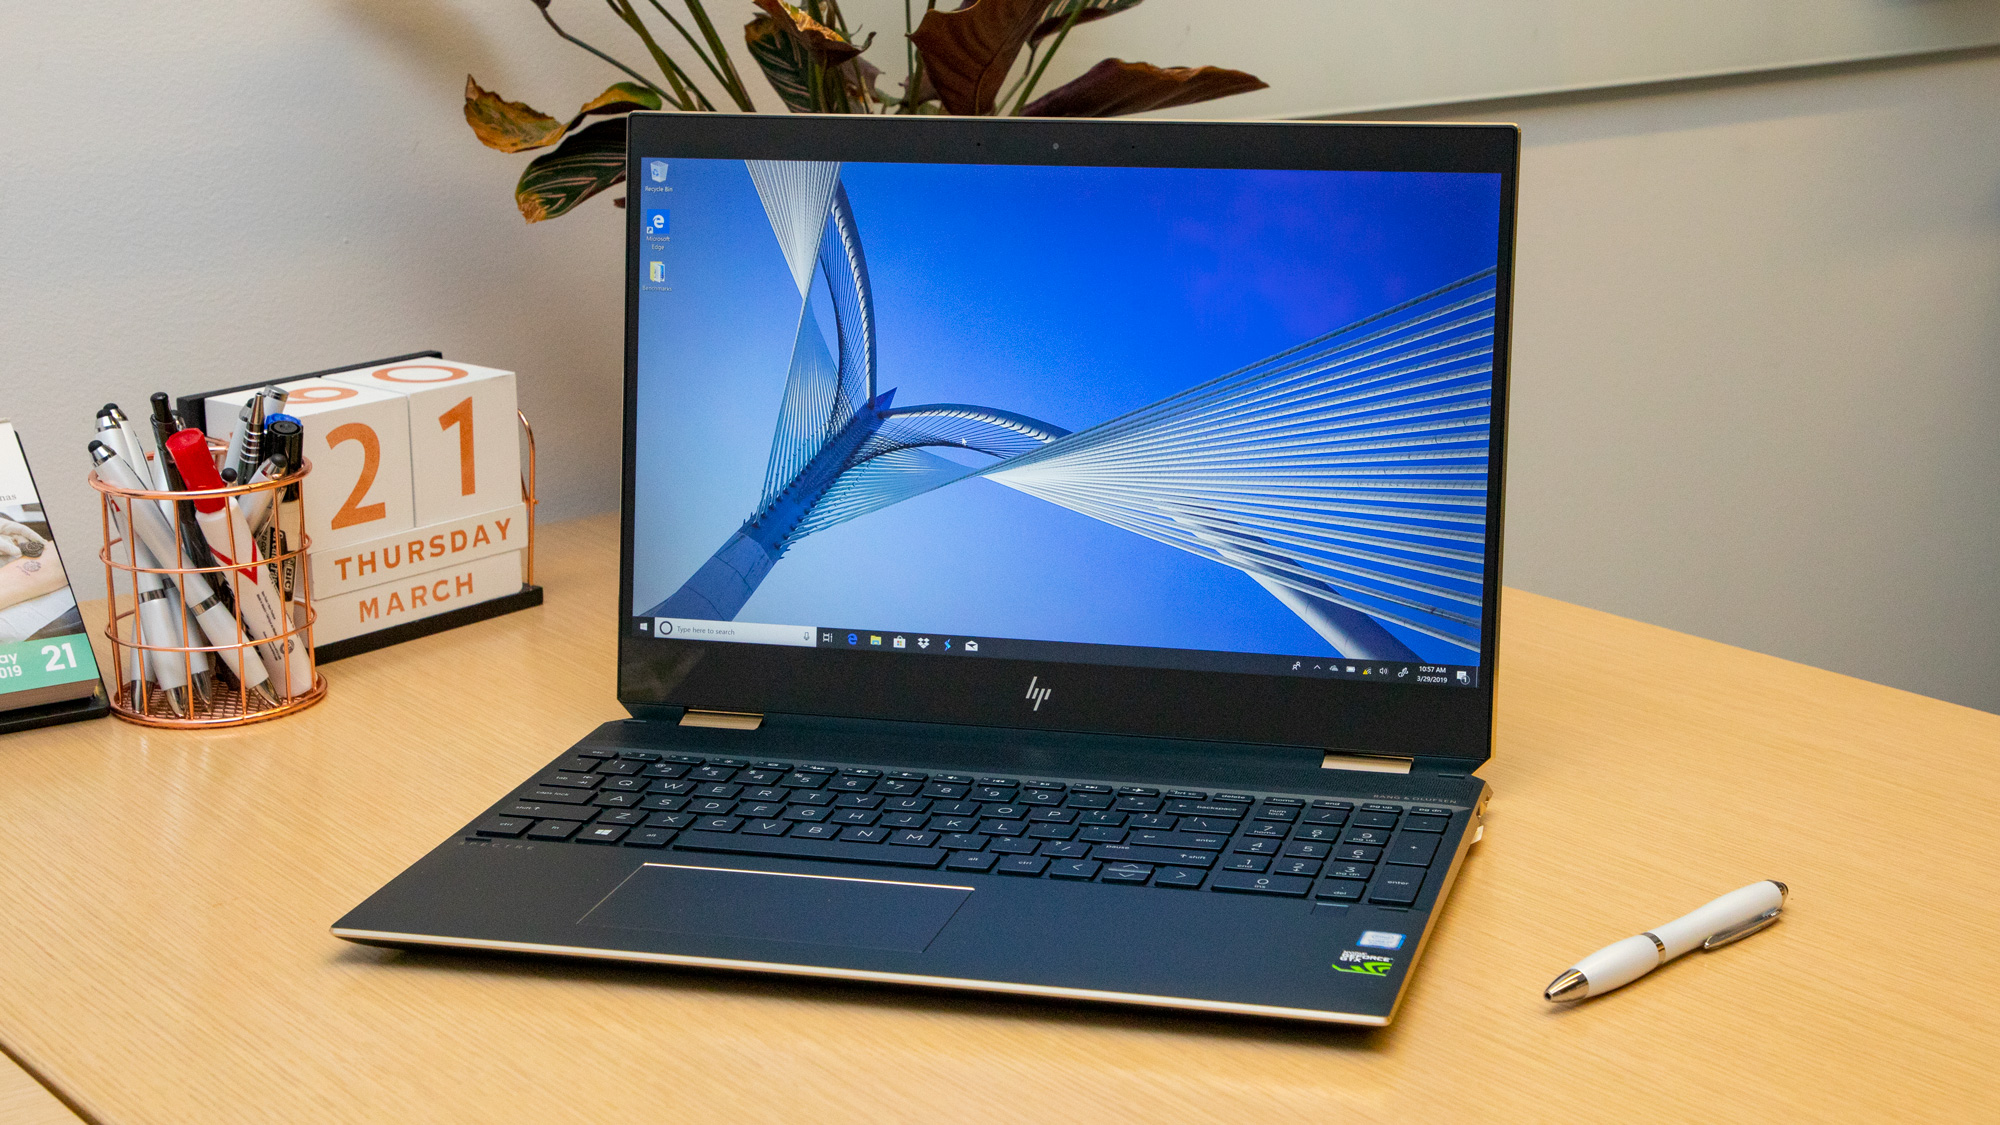 Hp Spectre X360 Review 2020.Hp Spectre X360 15t 2019 Review Techradar